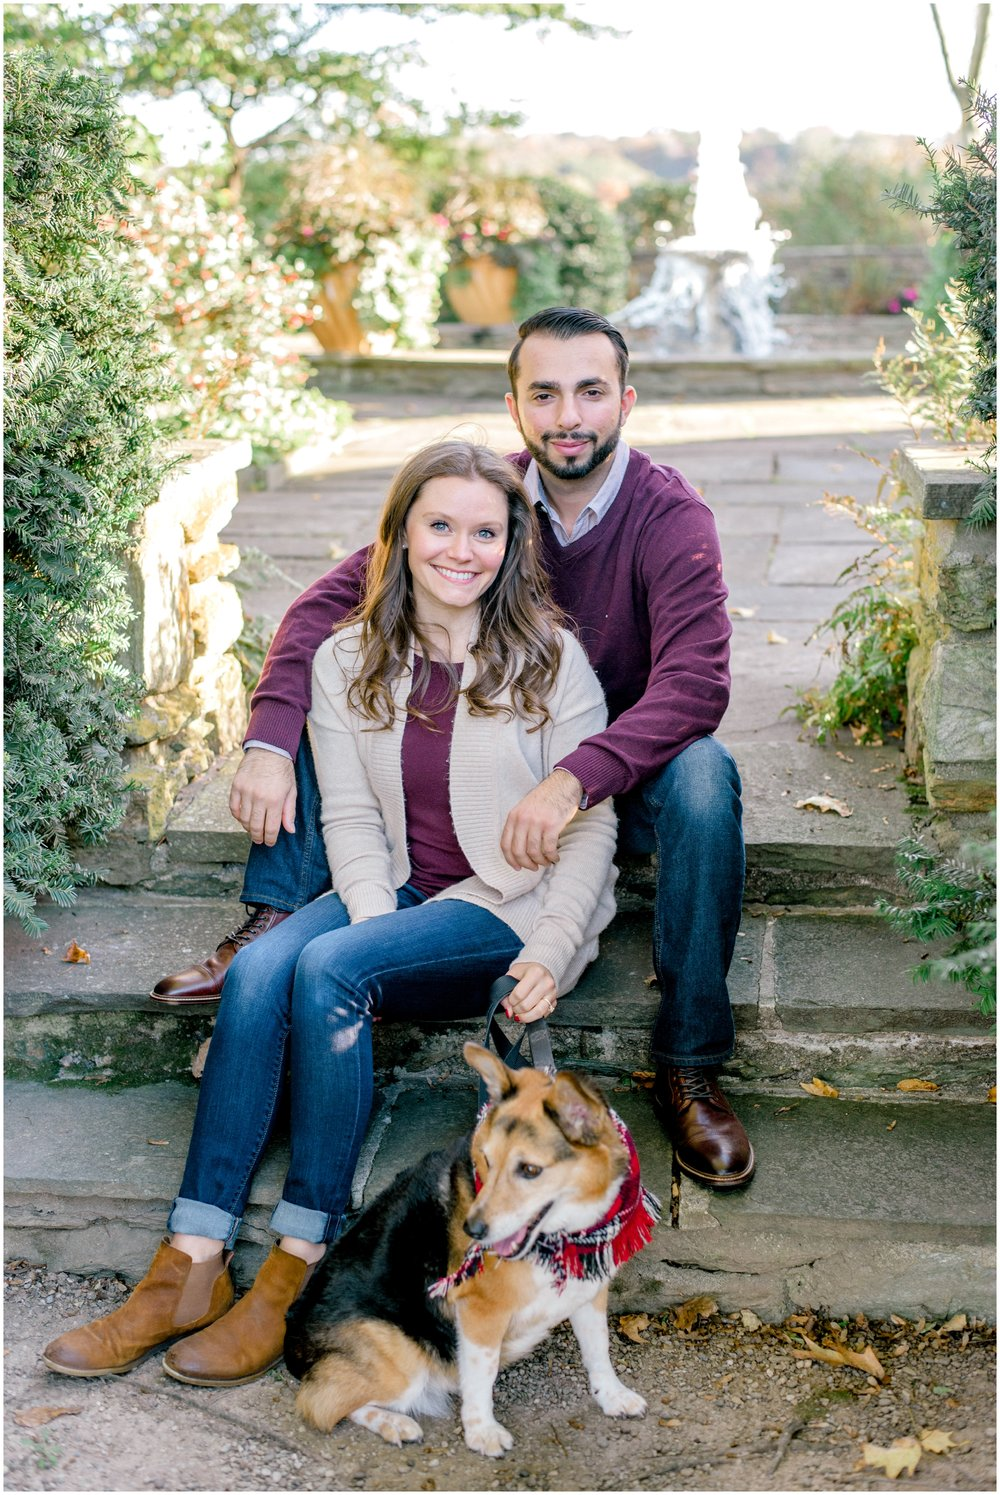 Fall Engagement Session at The Drumore Estate in Lancaster County - Krista Brackin Photography_0001.jpg